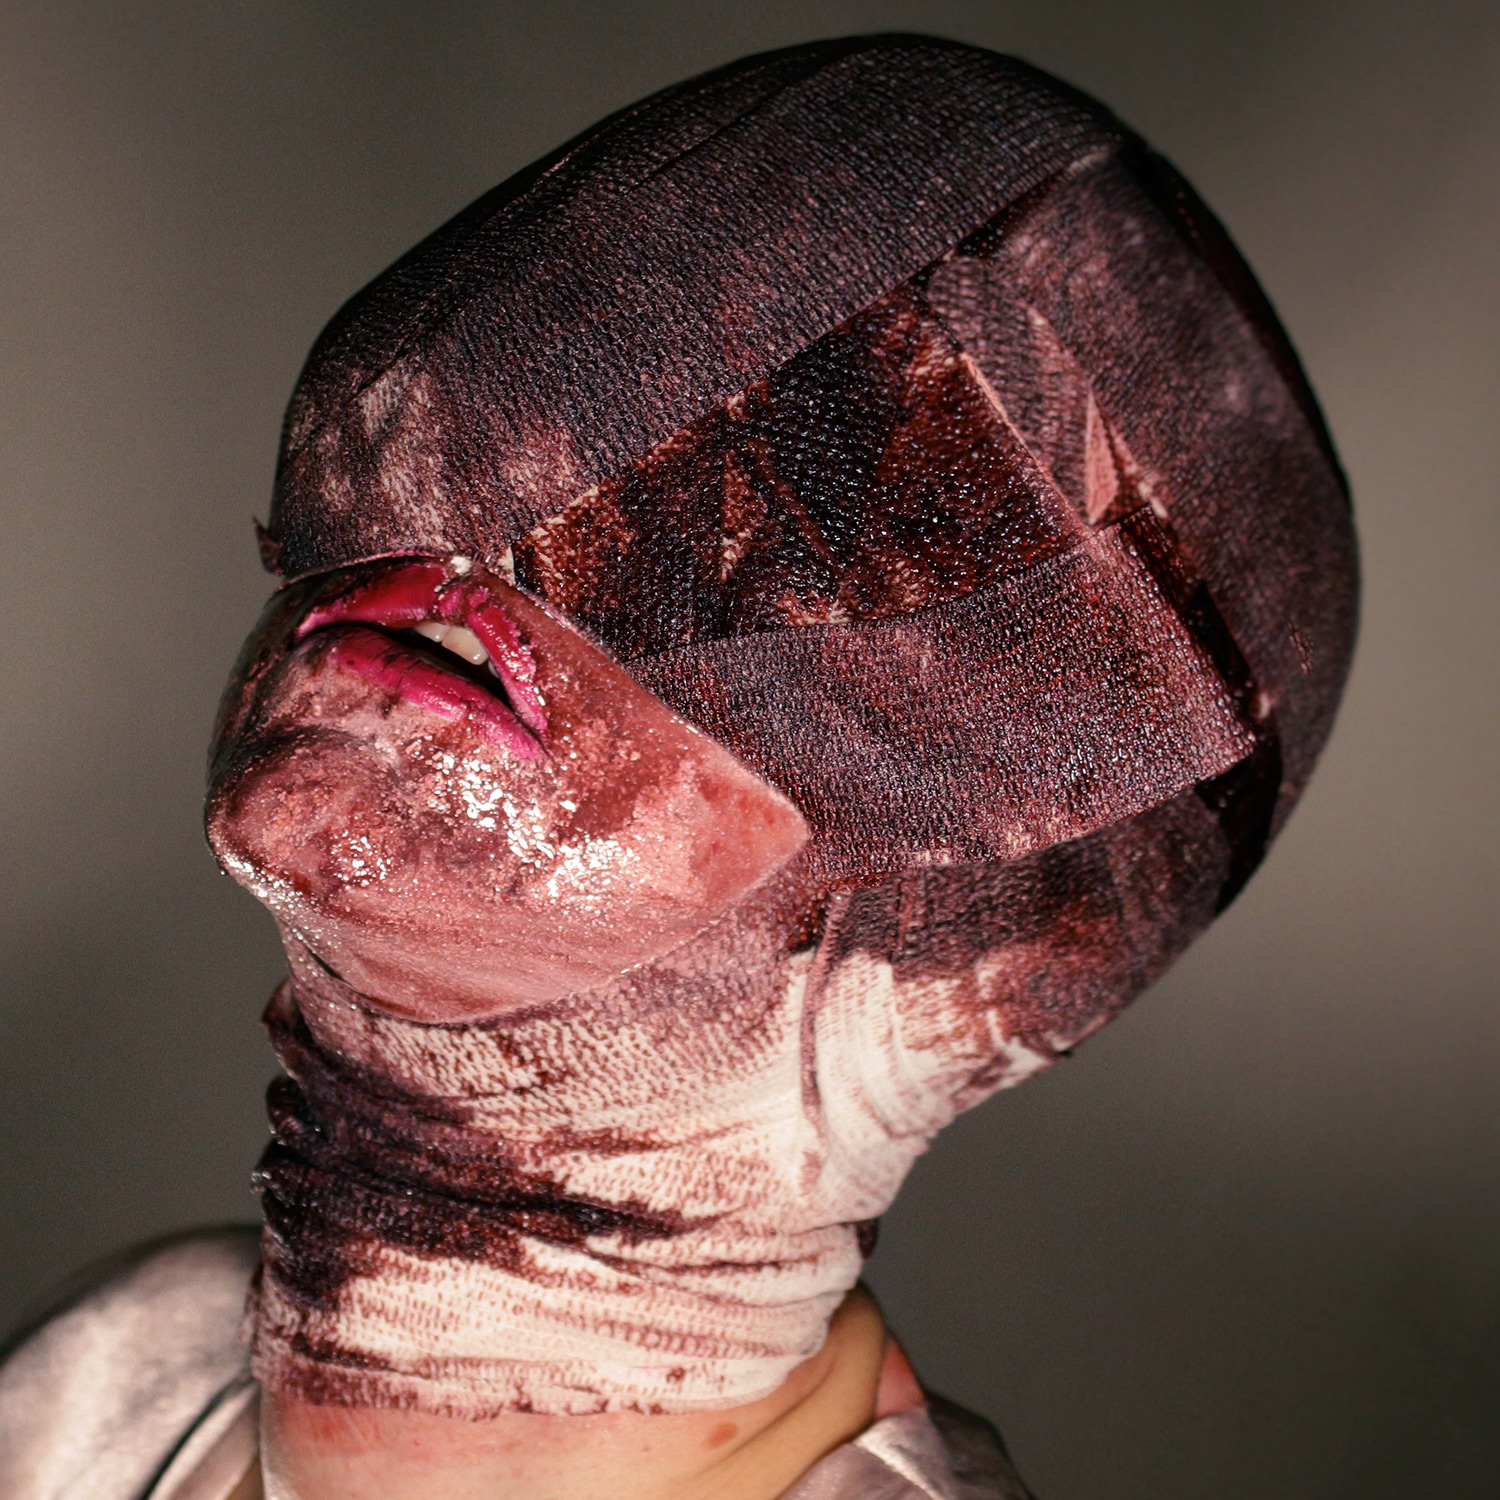 Javier Gallego Escutia - bloody bandaged face